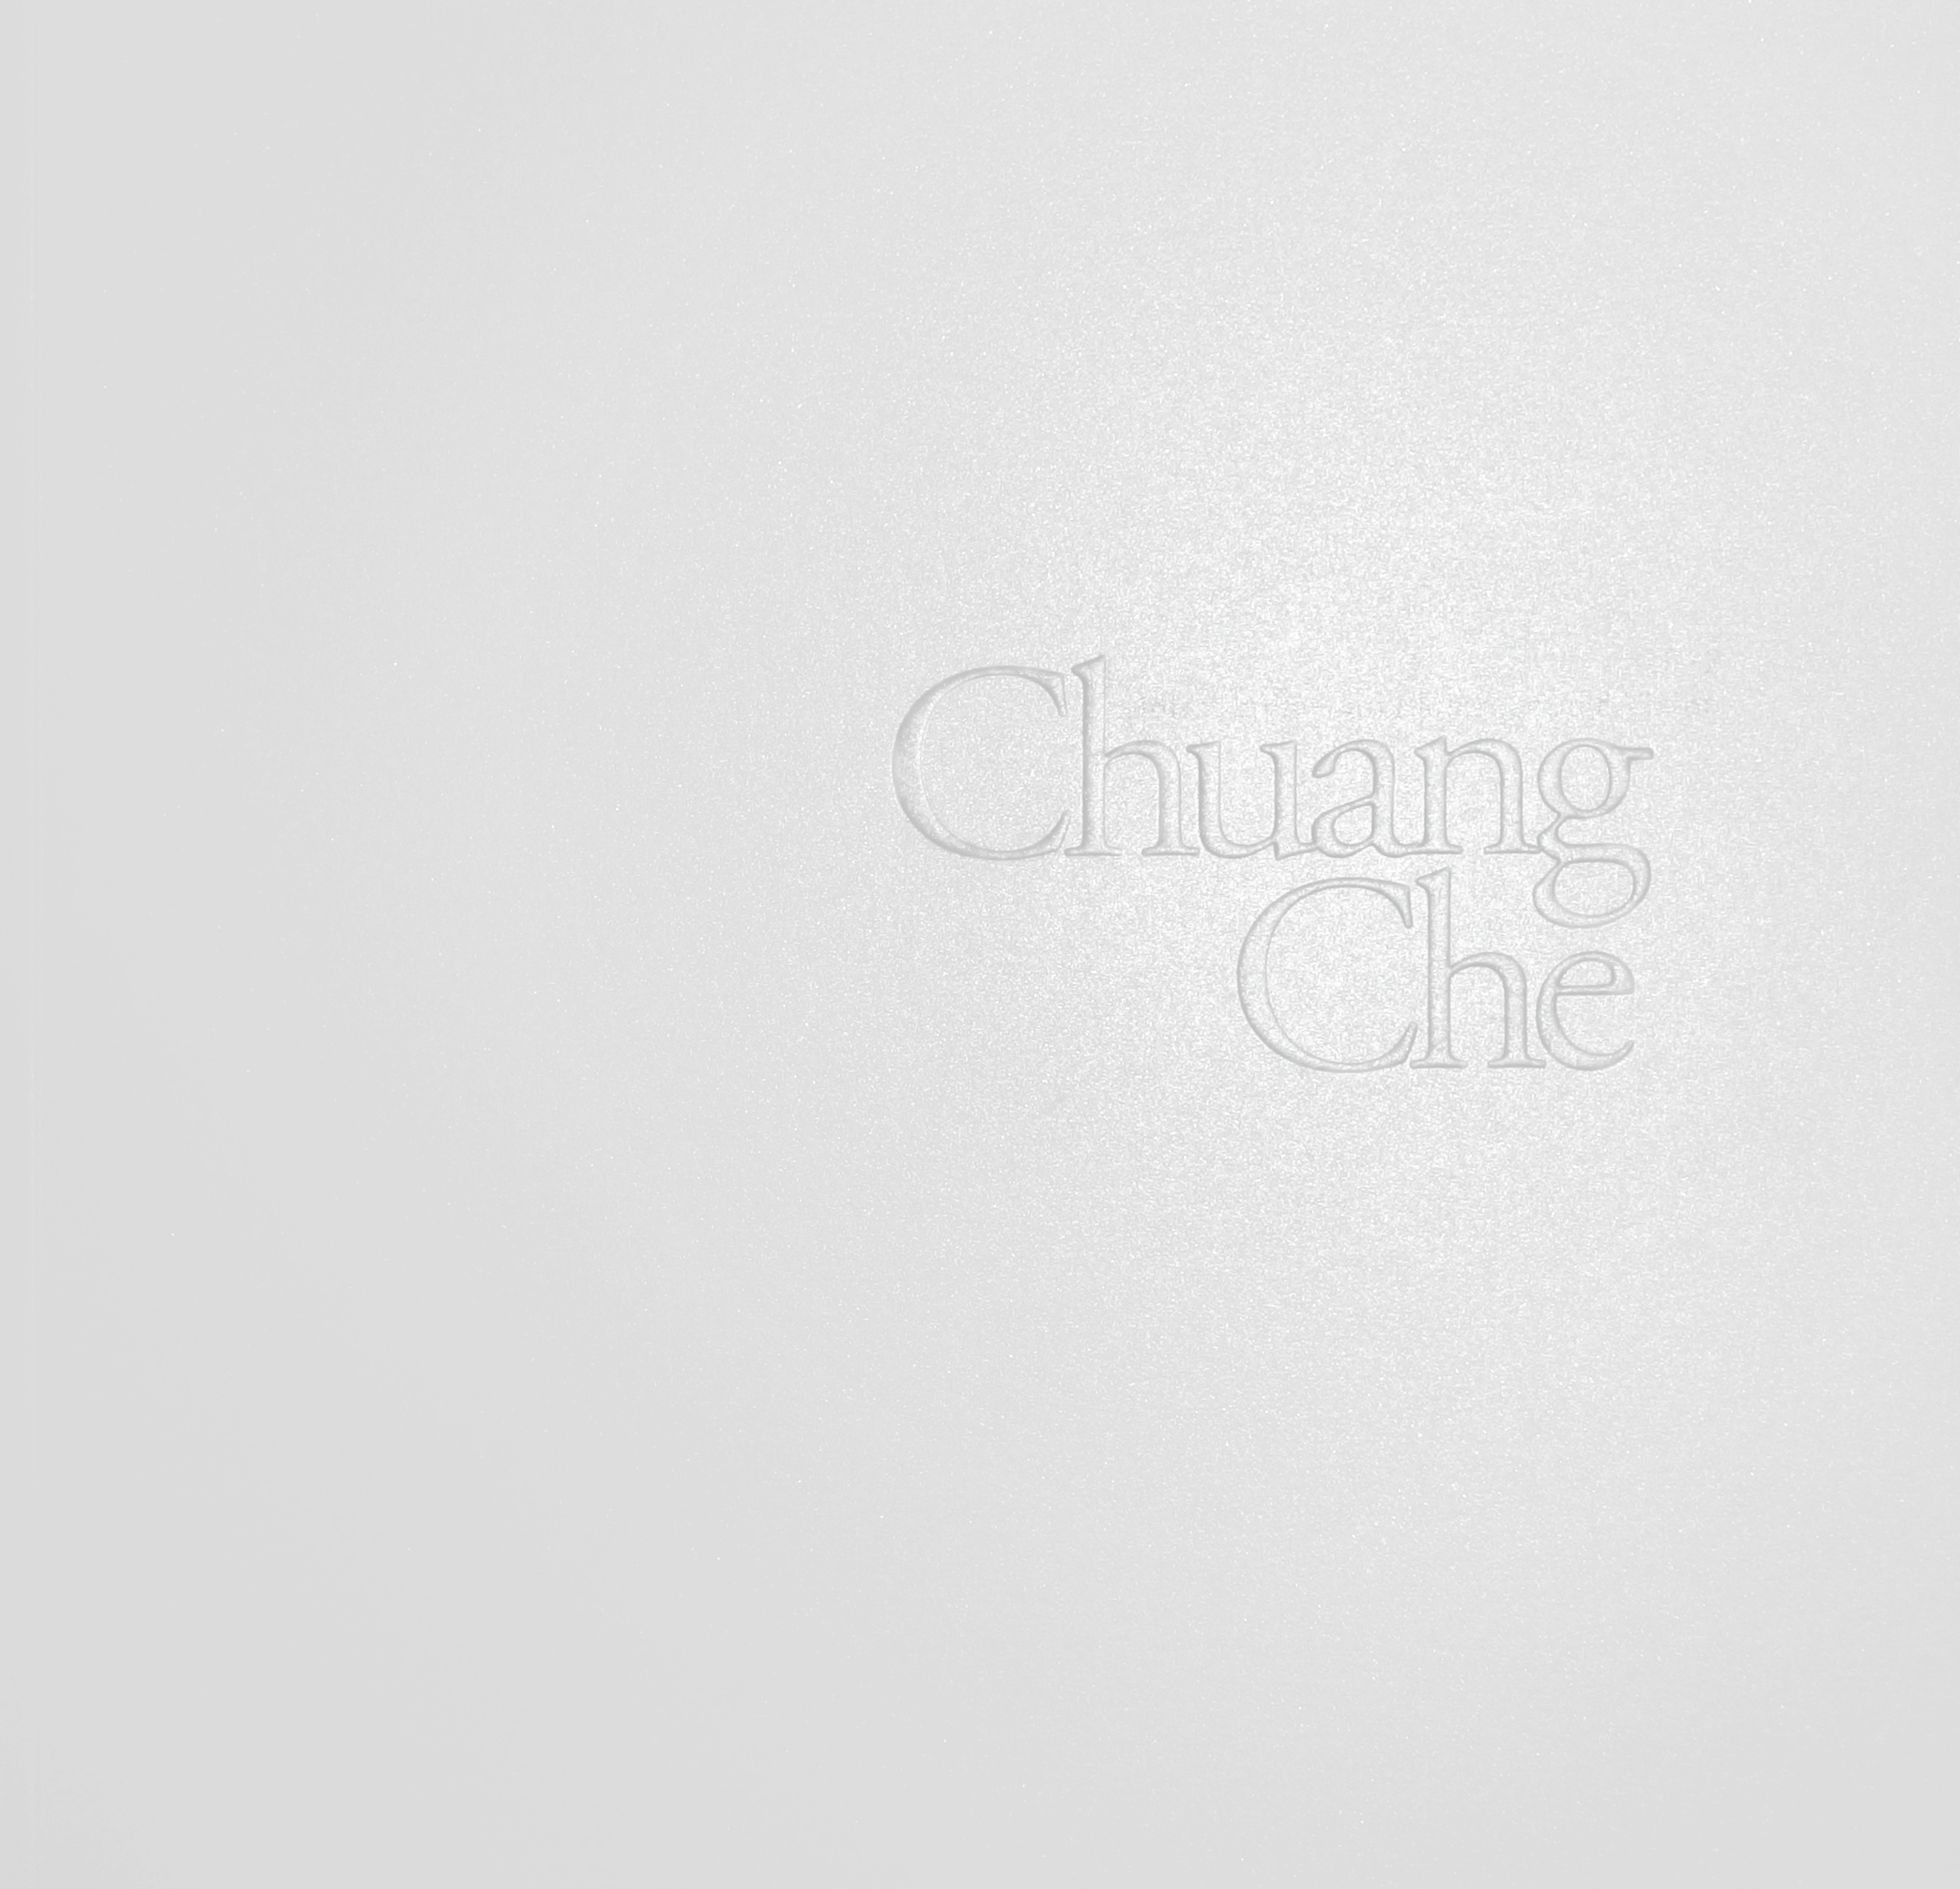 2012_2_Chuang Che Holistic View and Microscopic Vision_